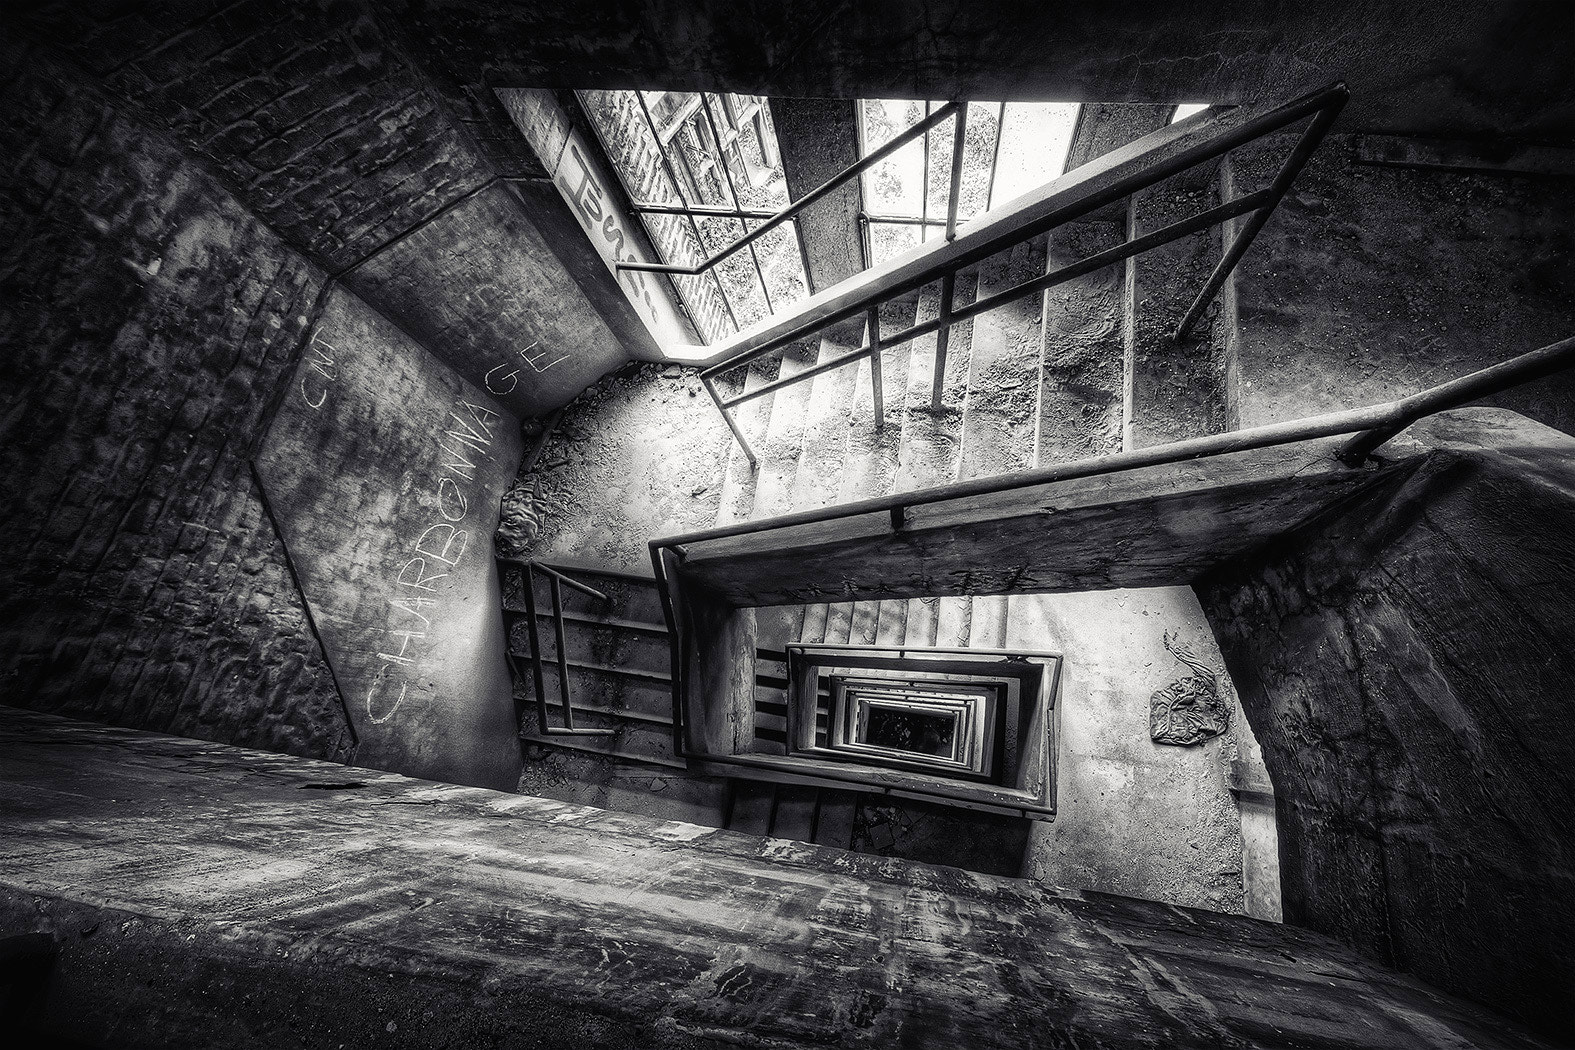 Photograph Stairs of Cheratte by Alain Dejeaifve on 500px